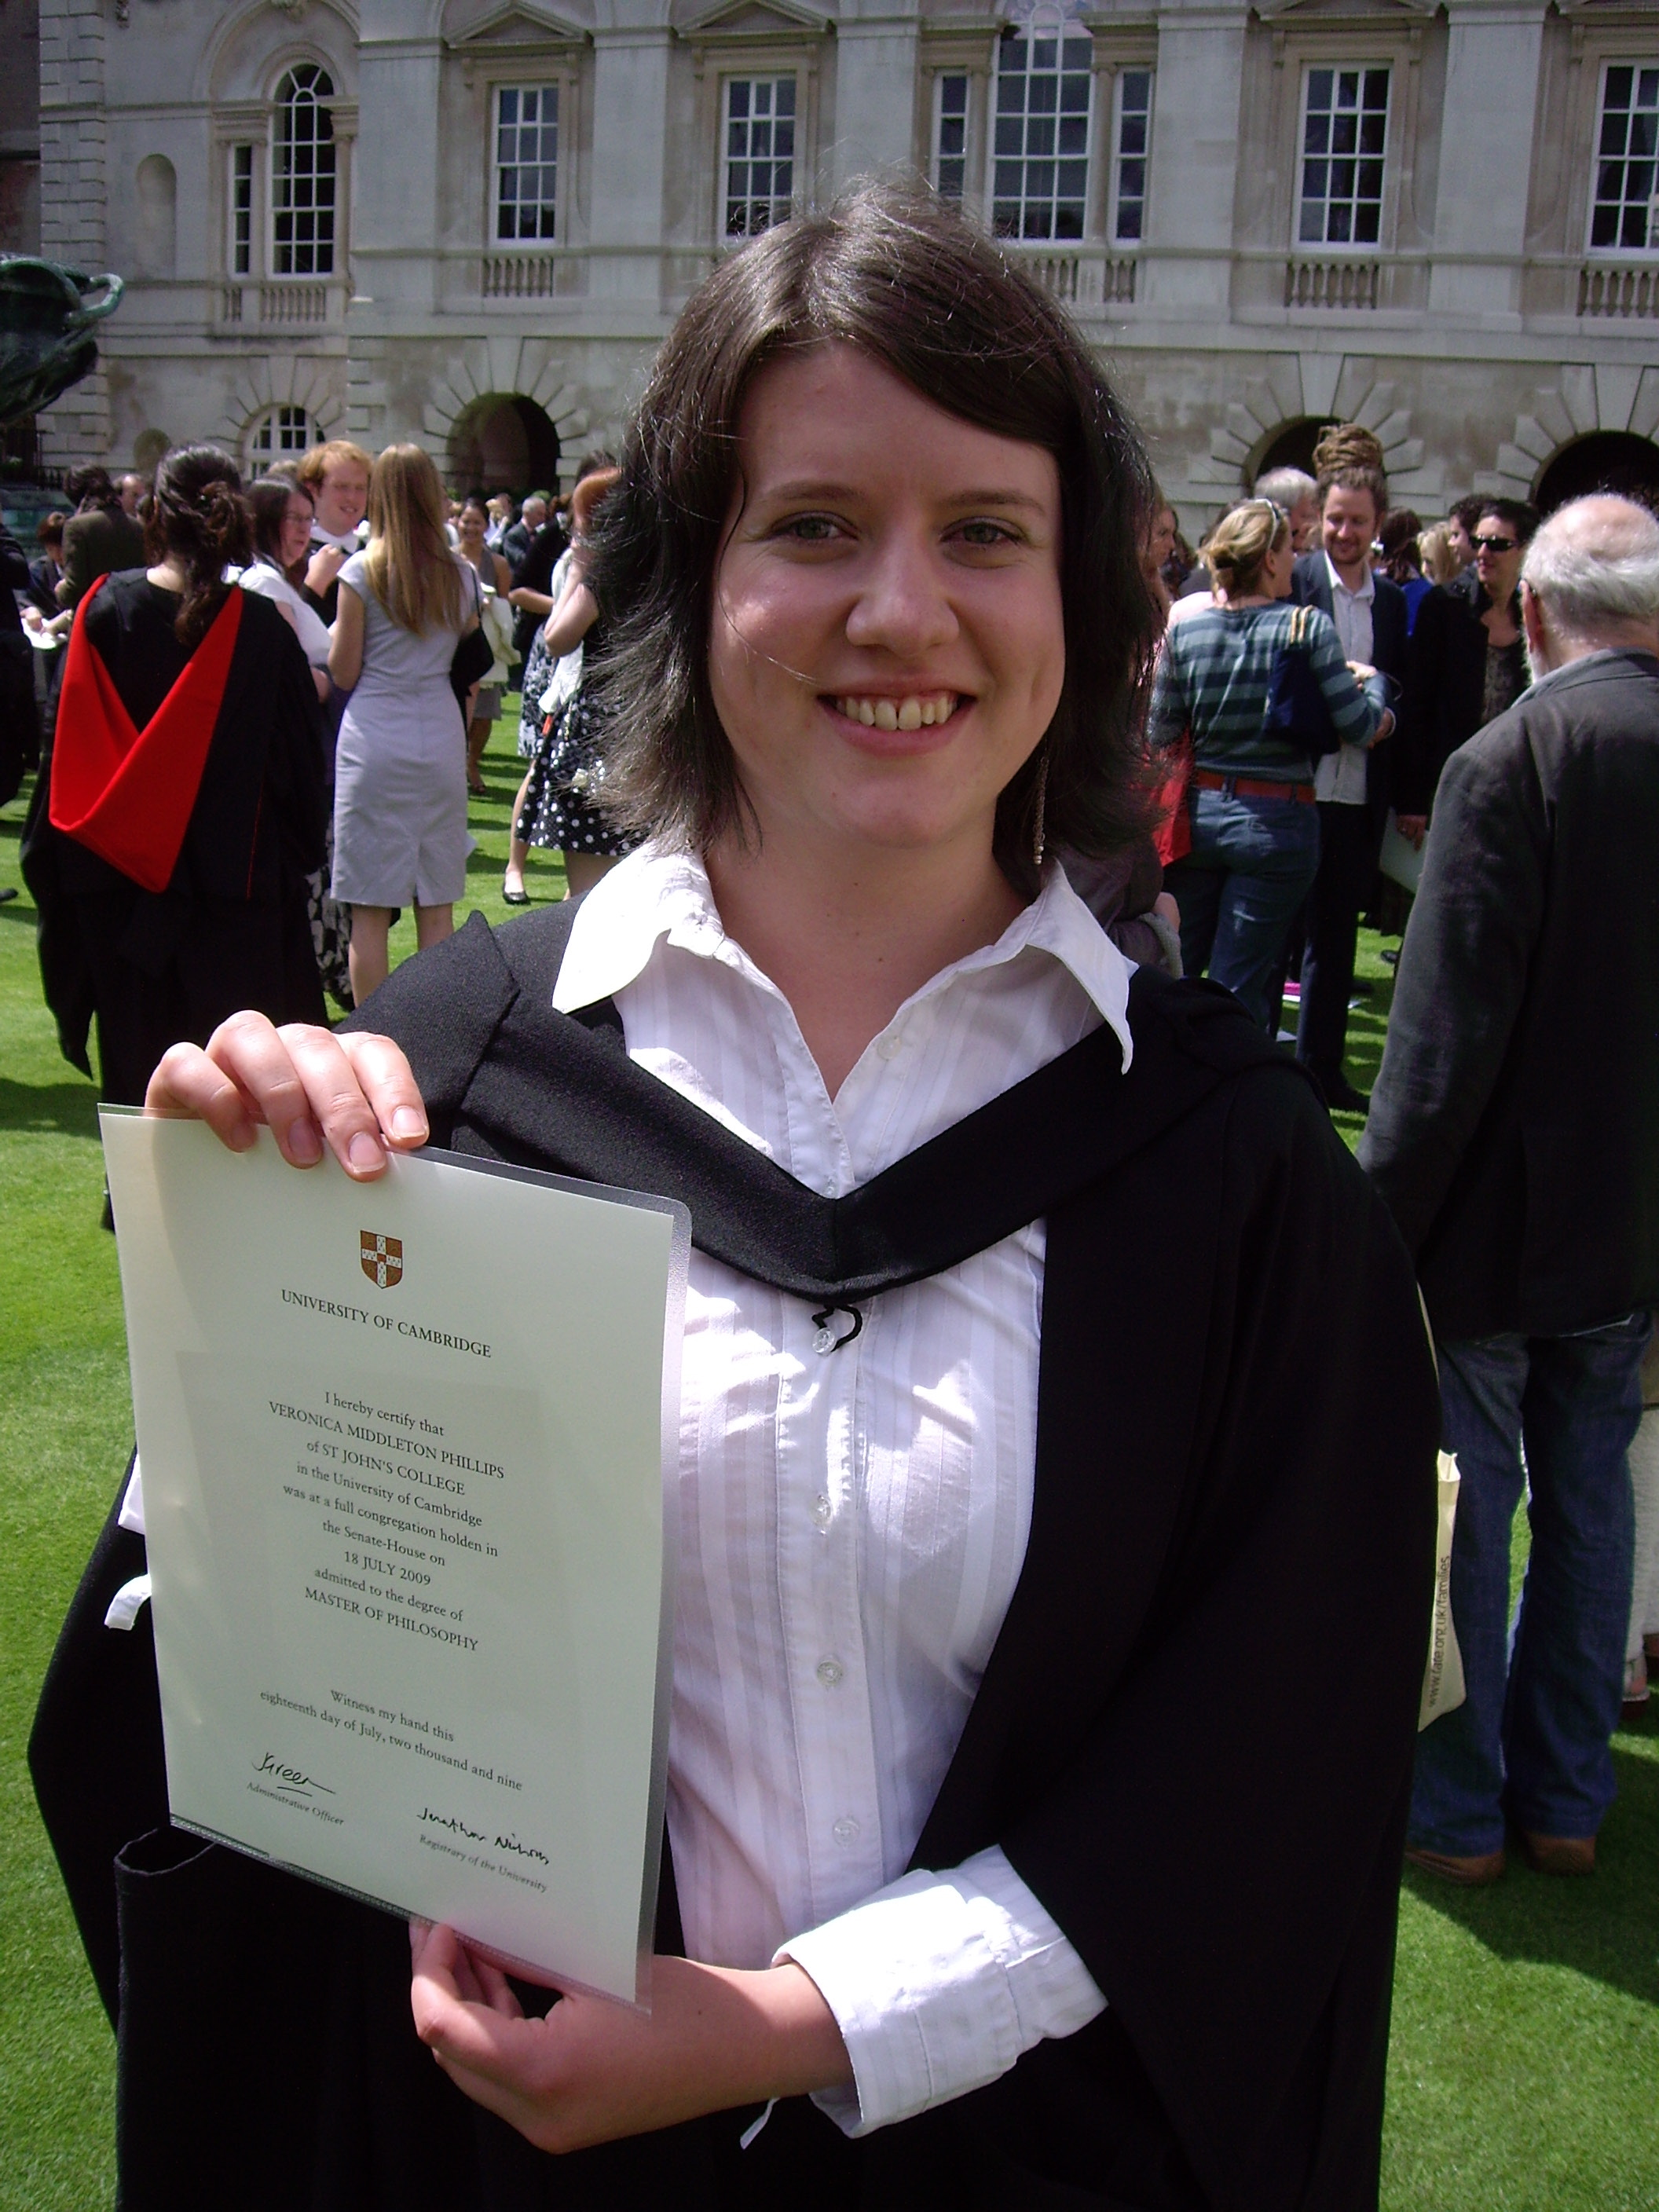 Me with my snazzy Cambridge degree.